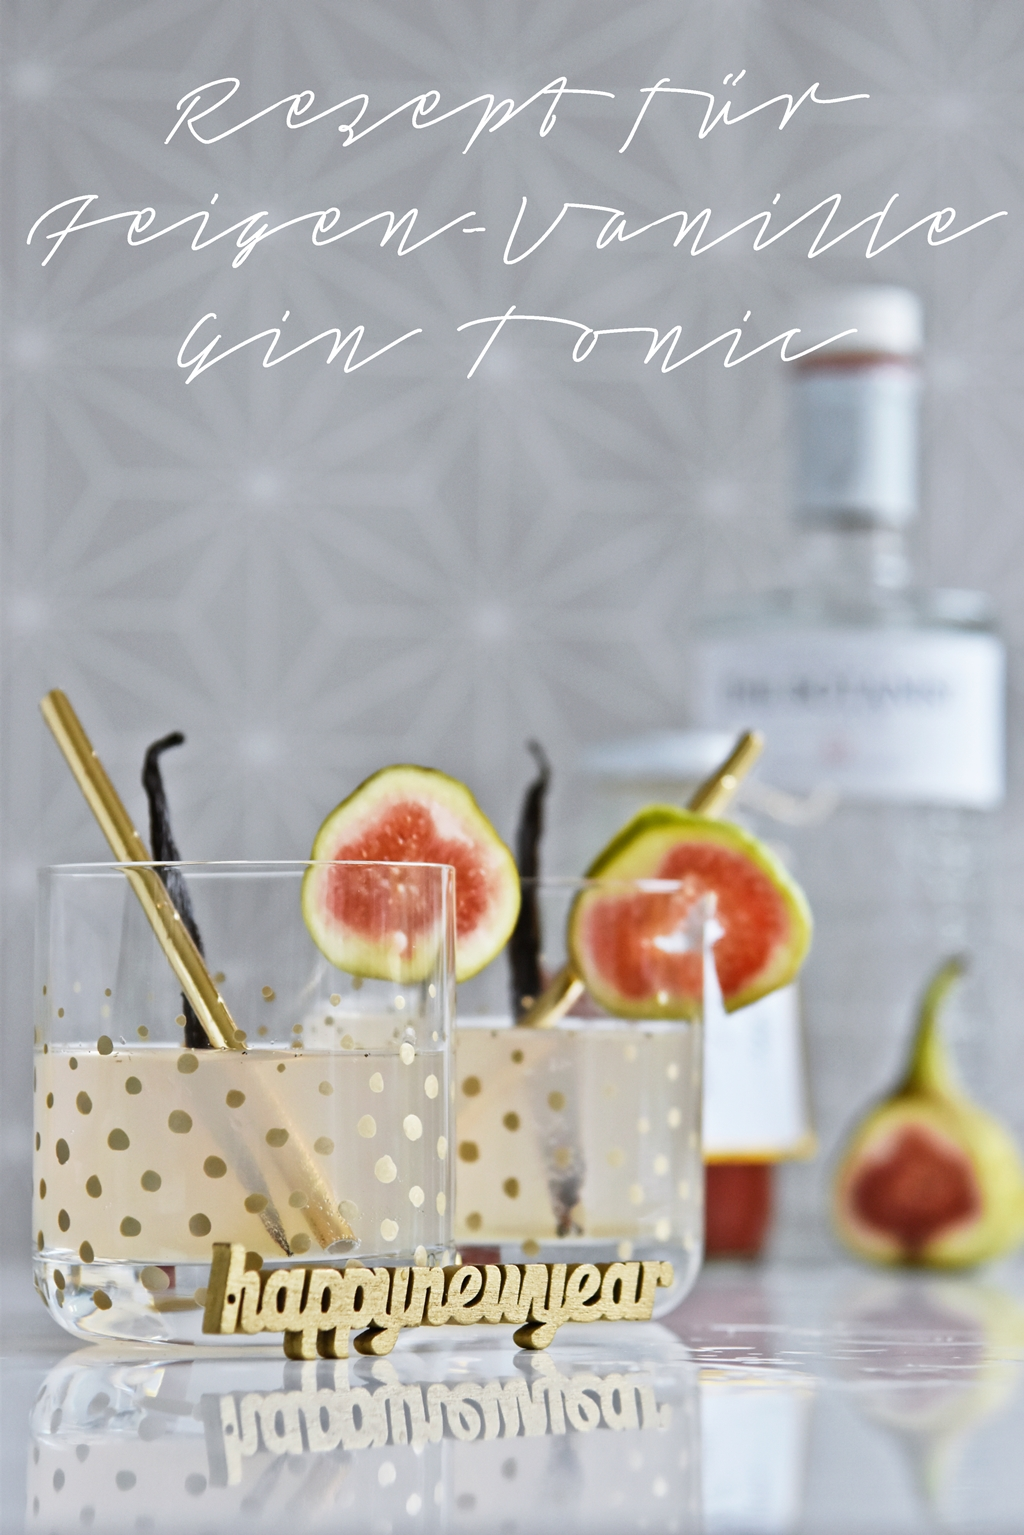 diy gl ser mit goldenen punkten feigen vanille gin tonic. Black Bedroom Furniture Sets. Home Design Ideas